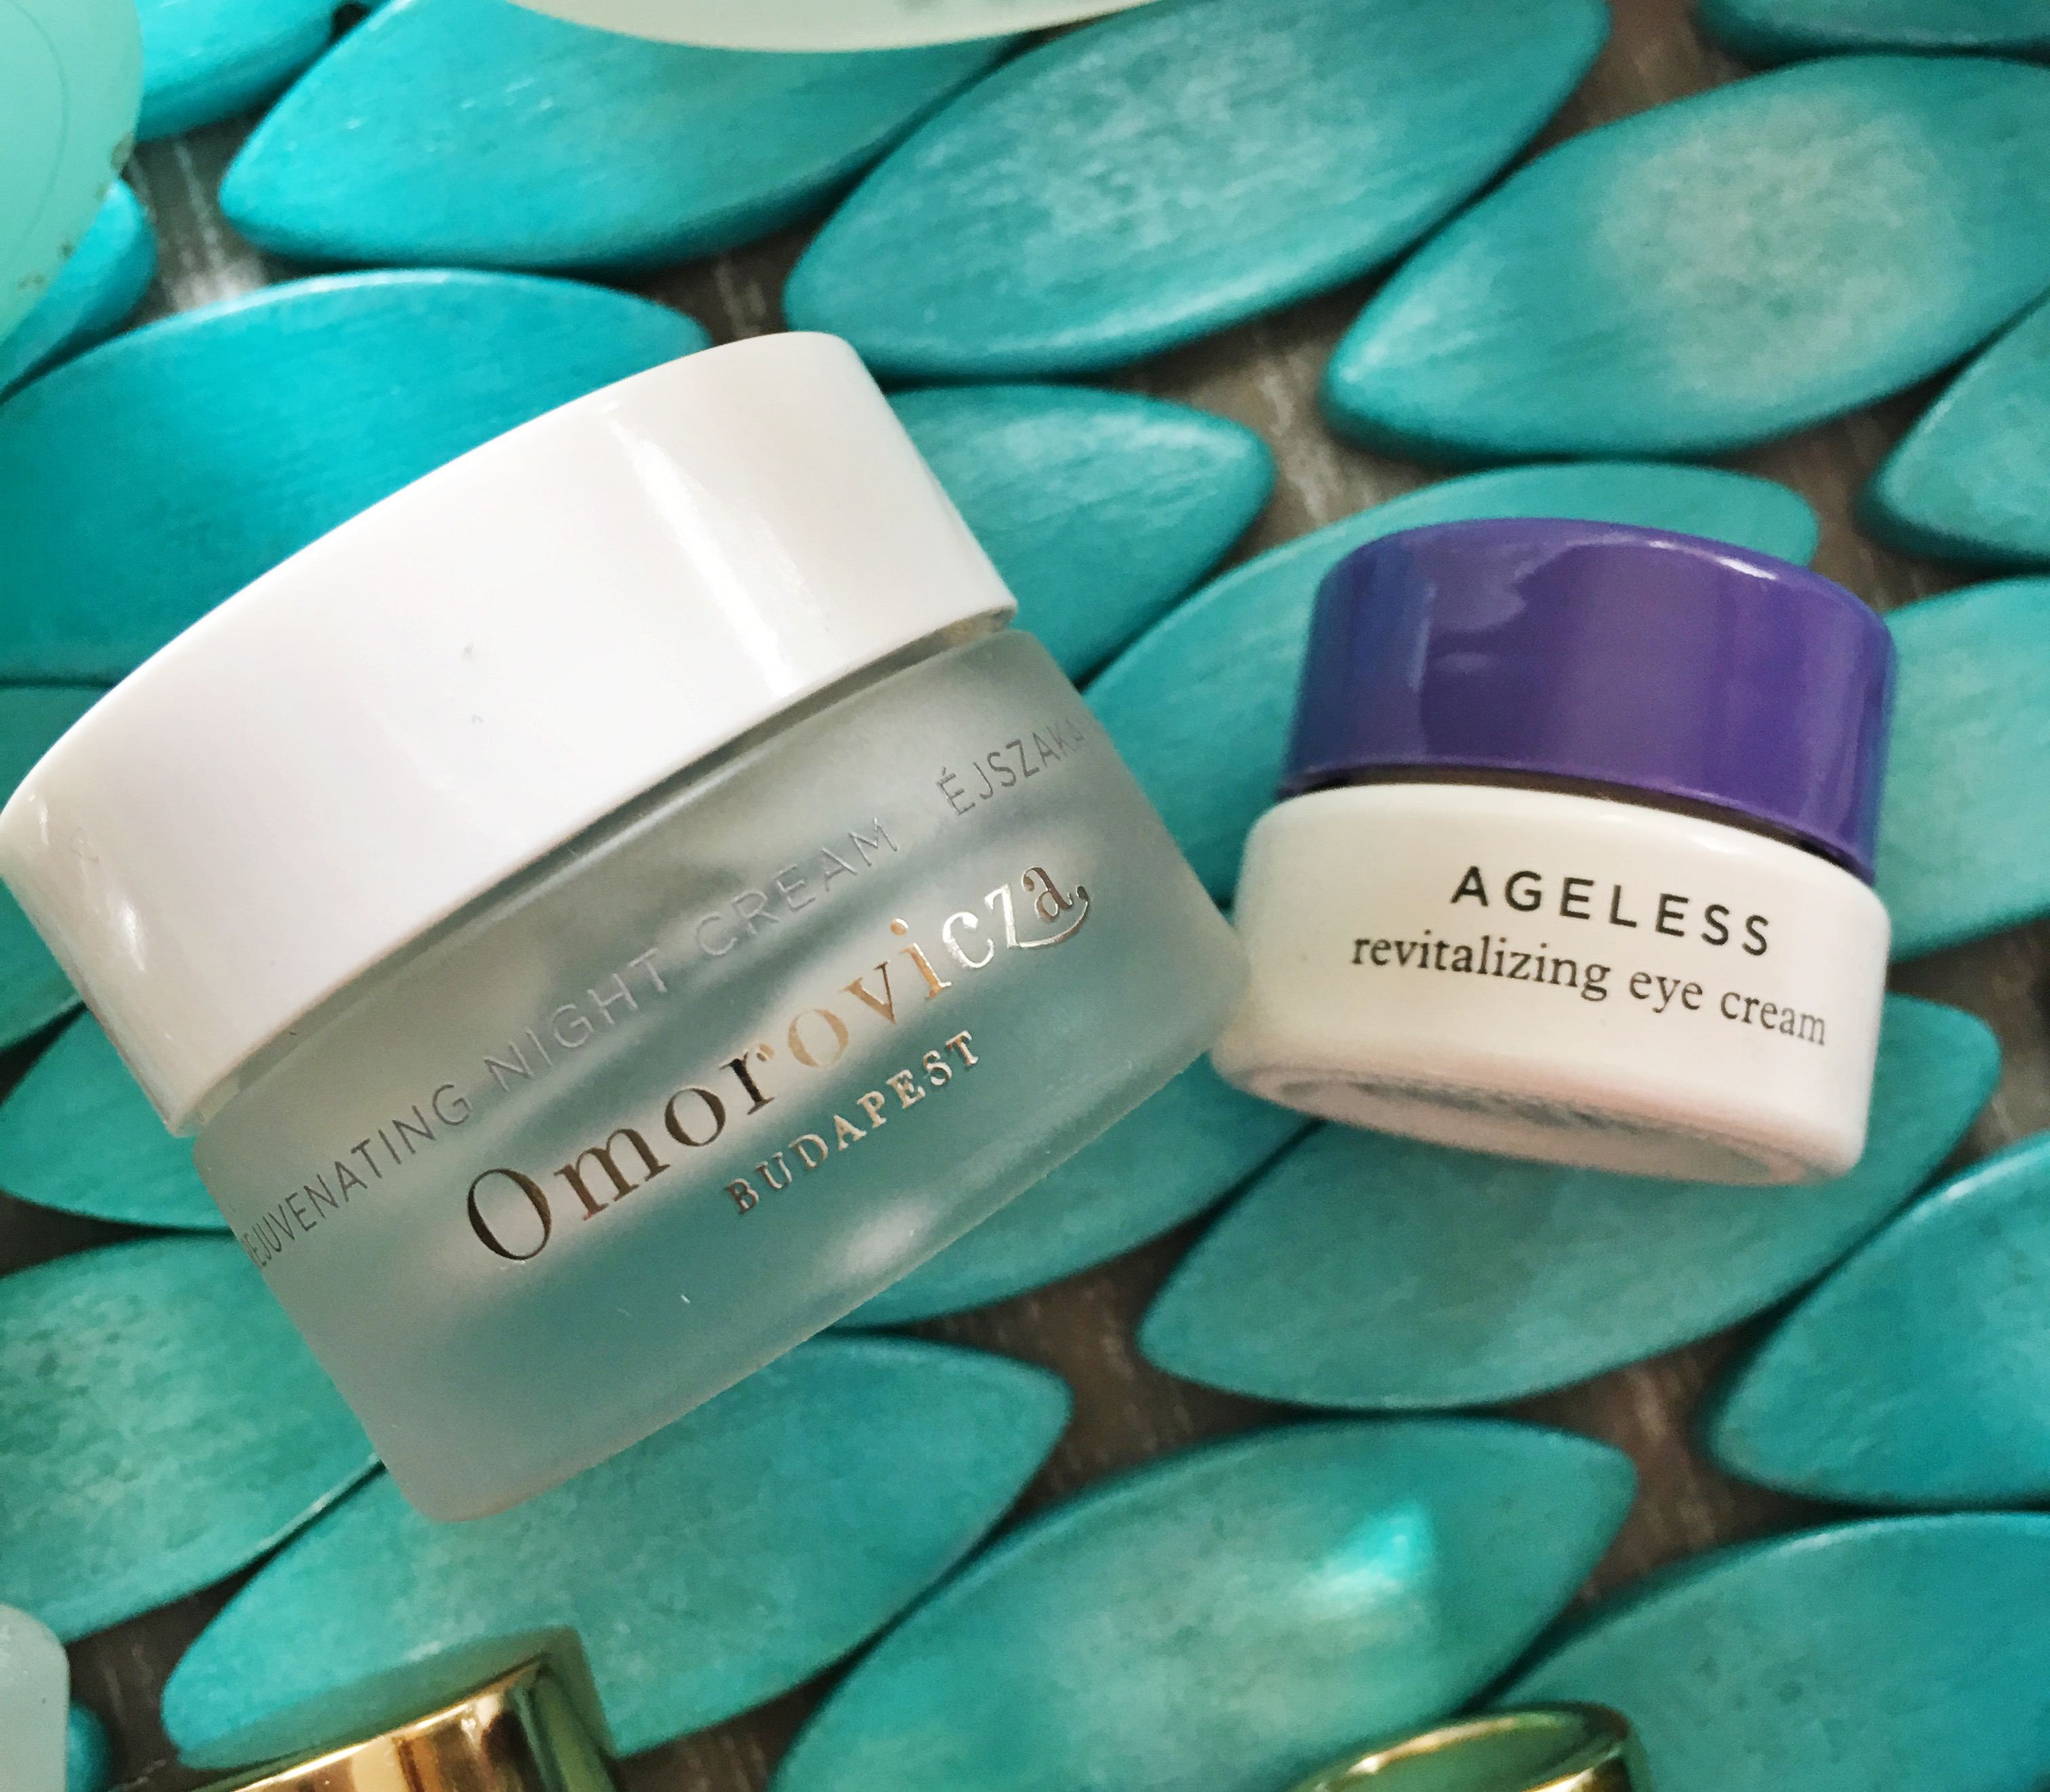 Omorovicza Rejuvenating Night Cream, Tatcha Ageless Revitalizing Eye Cream